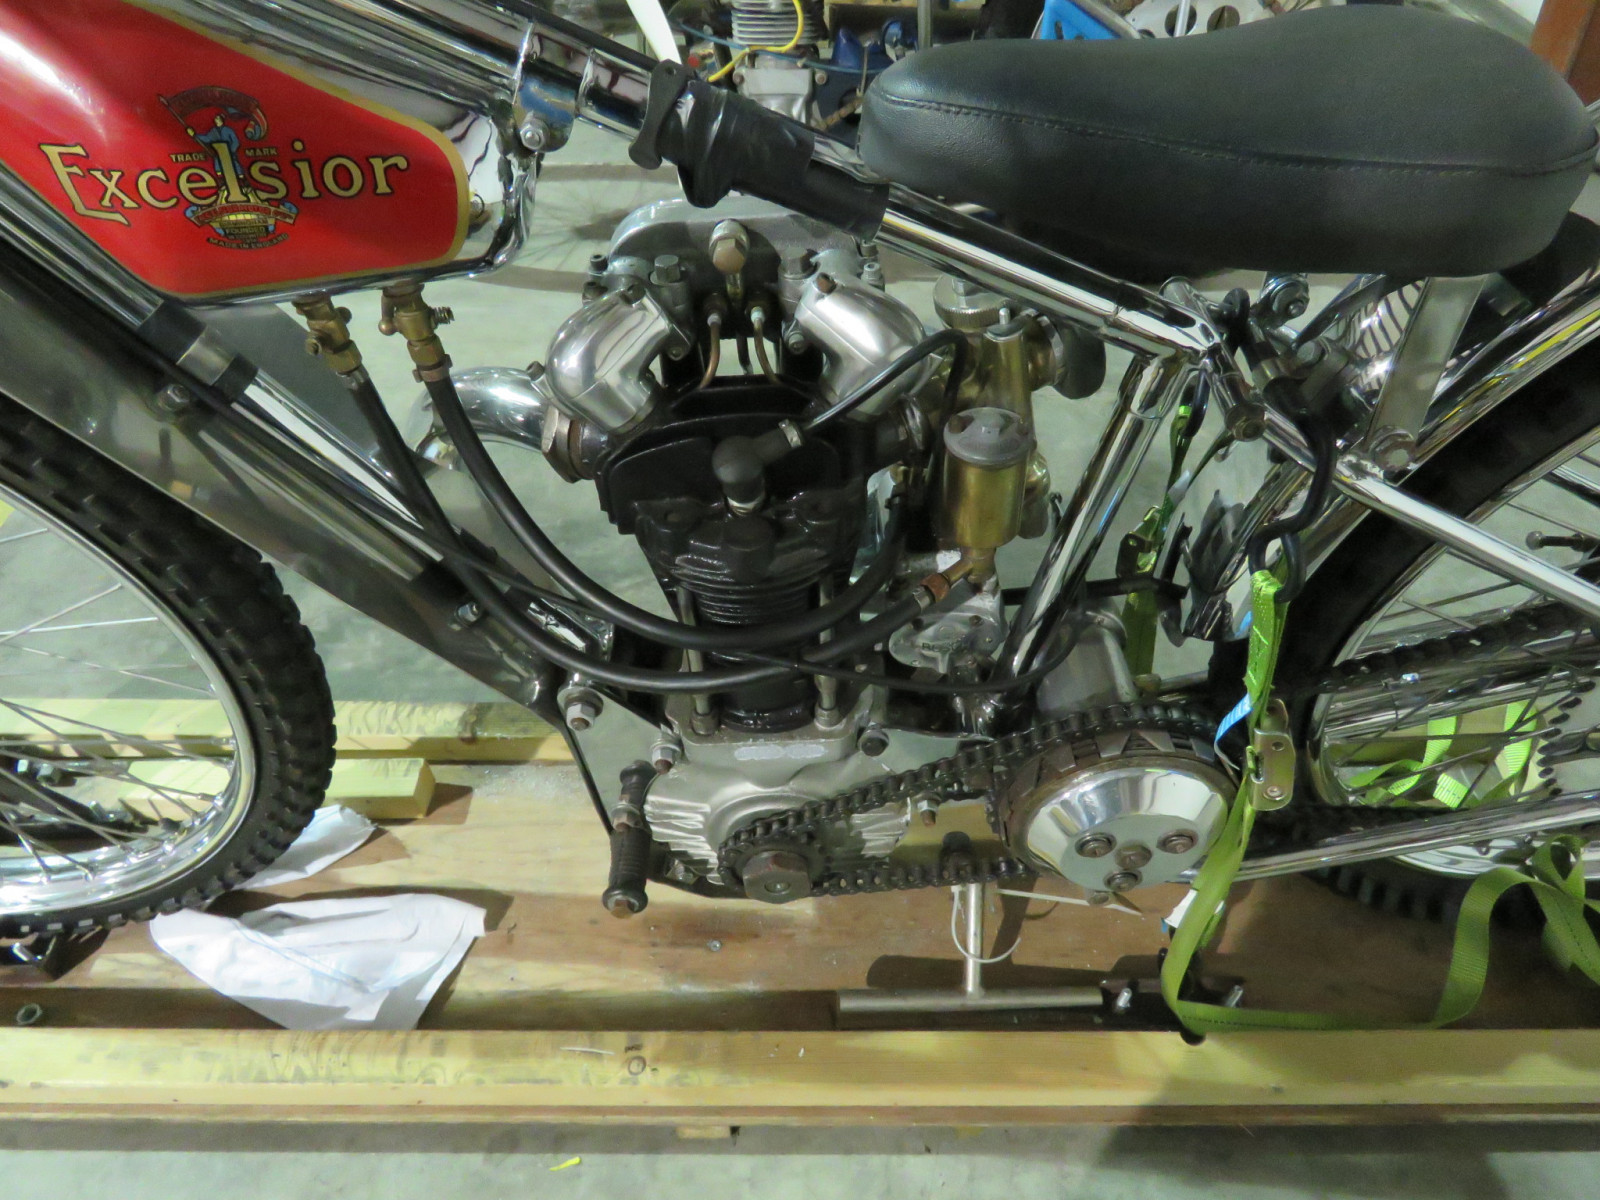 JAP Speedway Racer Motorcycle - Image 4